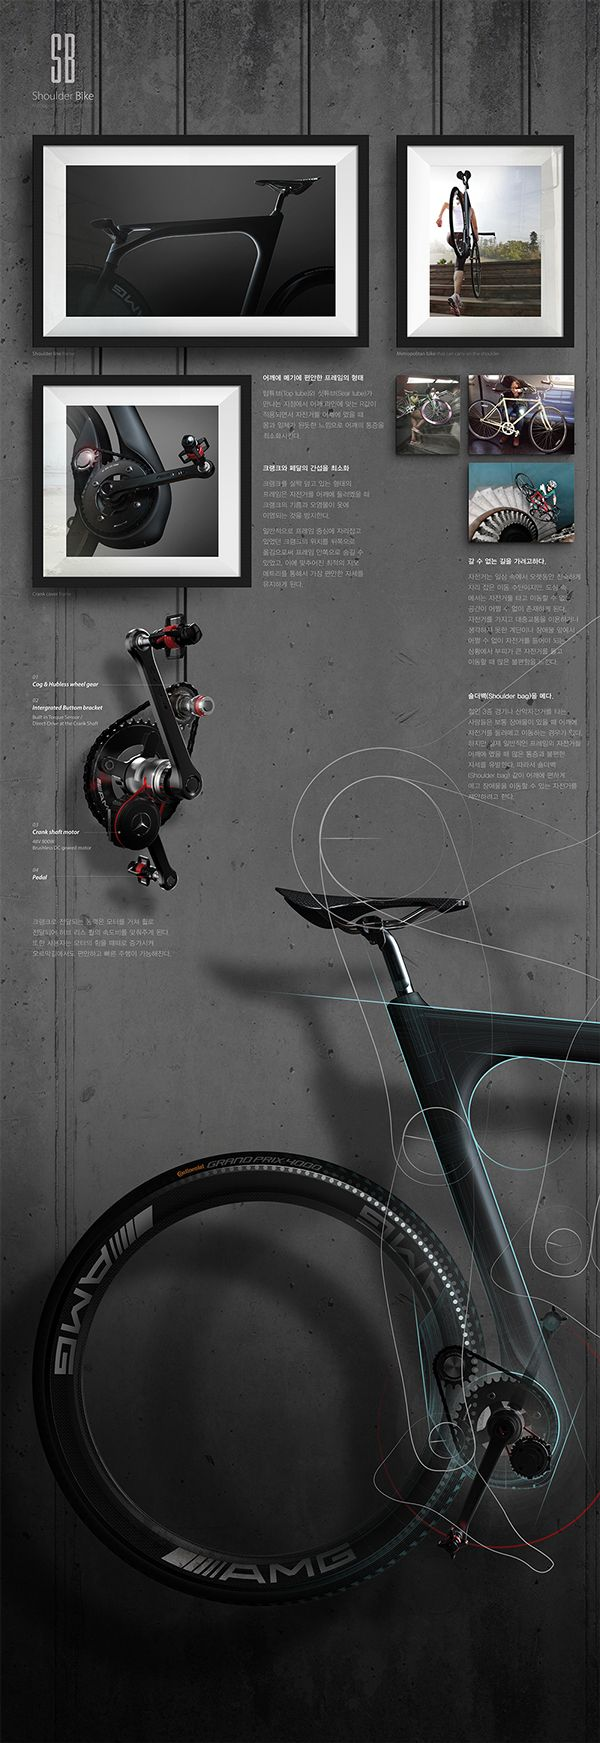 Shoulder Bike_Ver.2 on Industrial Design Served